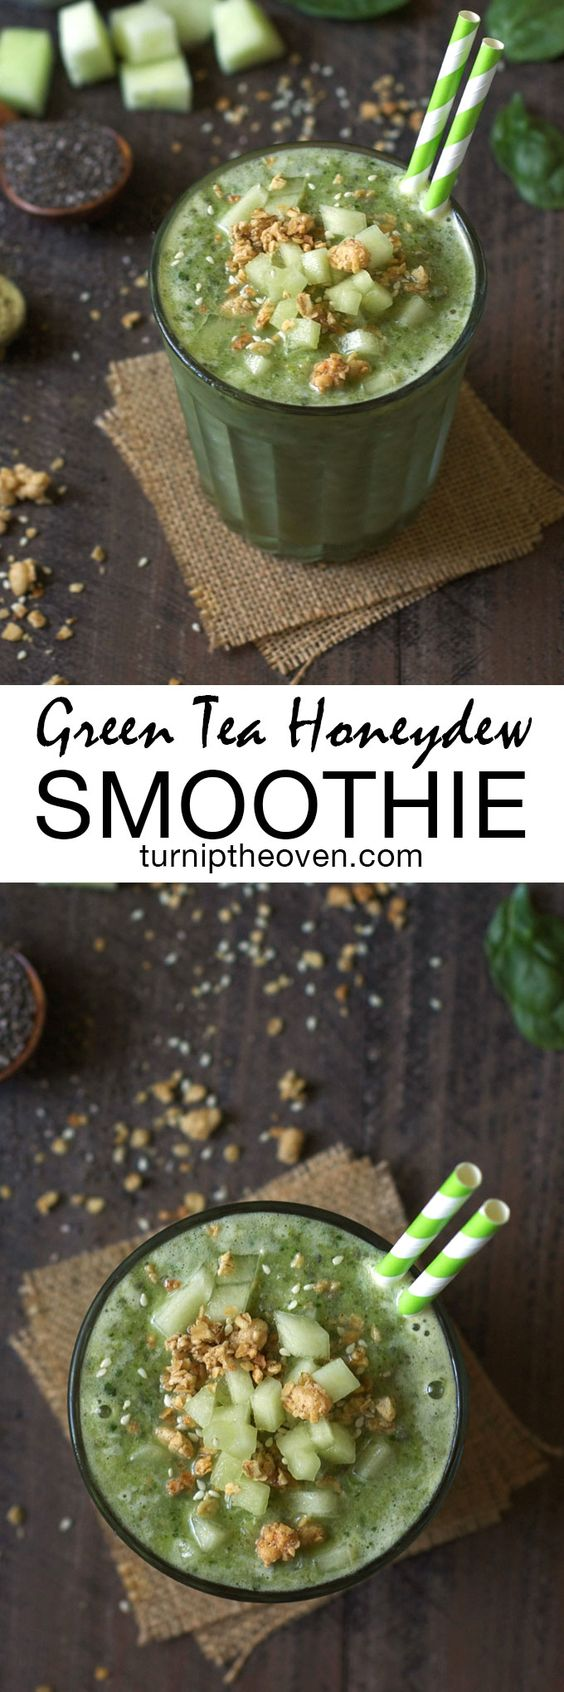 This green tea honeydew smoothie is loaded with the healing powers and health benefits of matcha! Light, sweet, and refreshing, it makes the perfect gluten-free, vegan power breakfast.